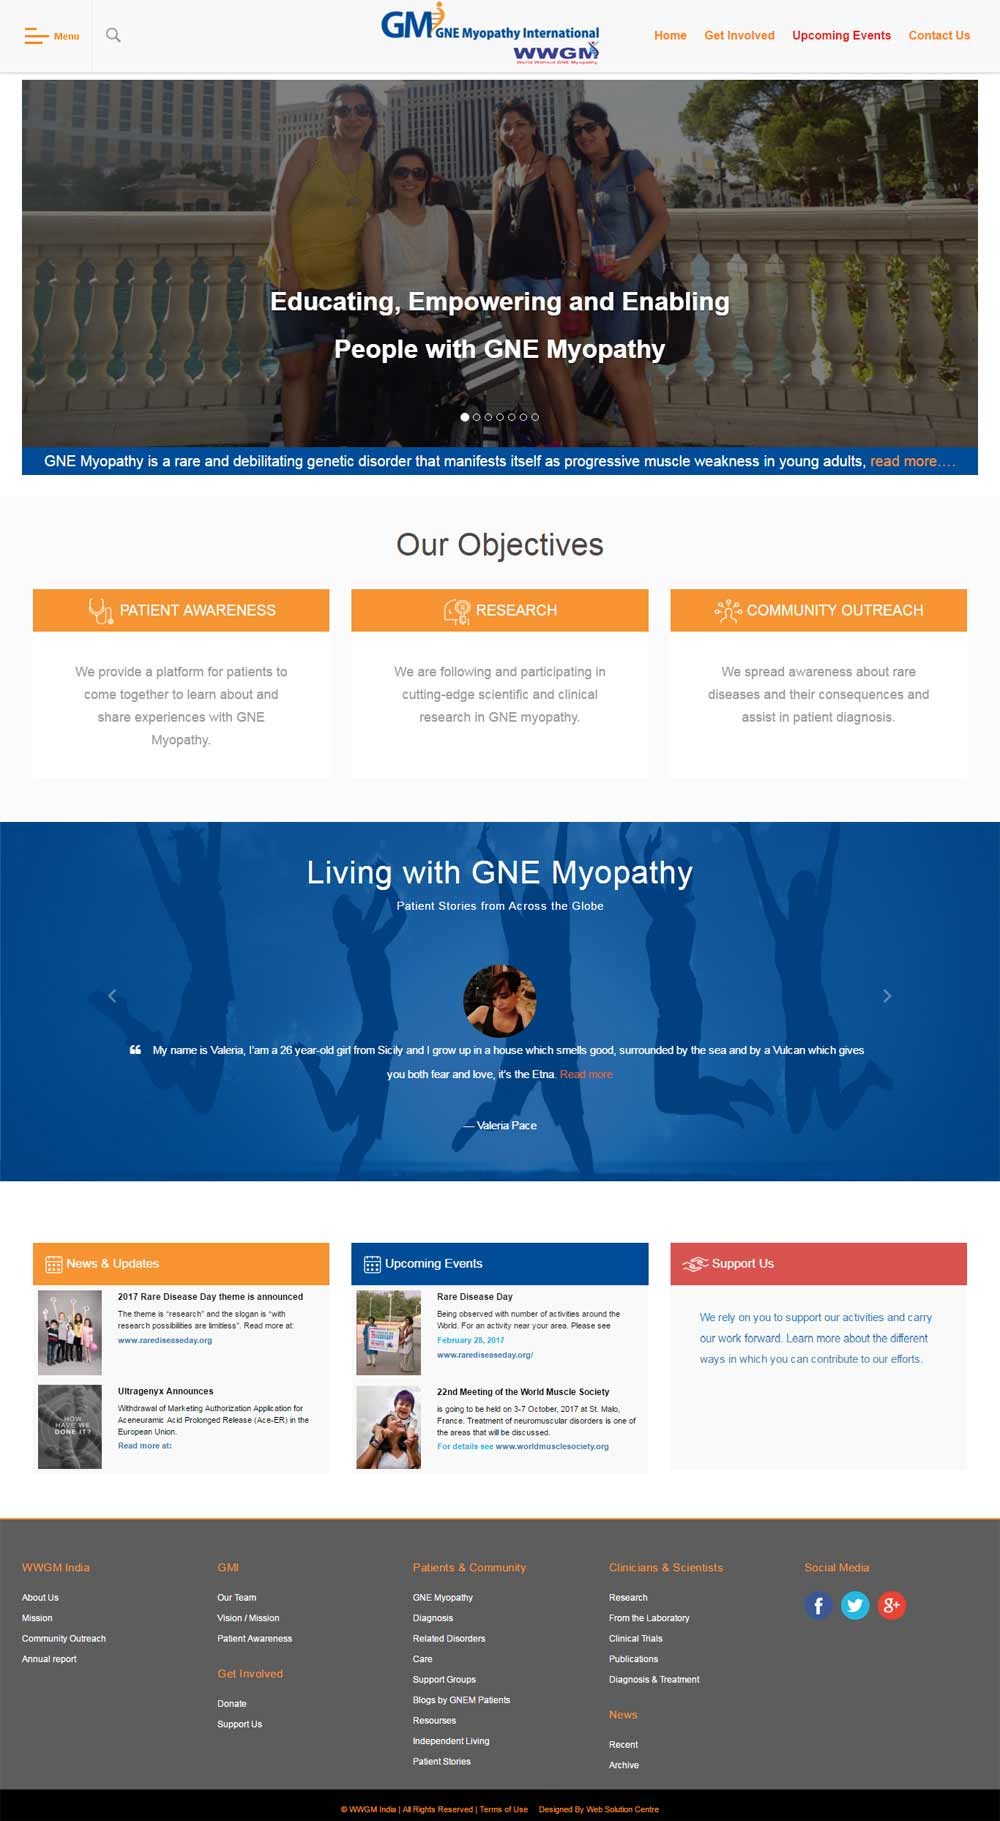 GNE Myopathy International